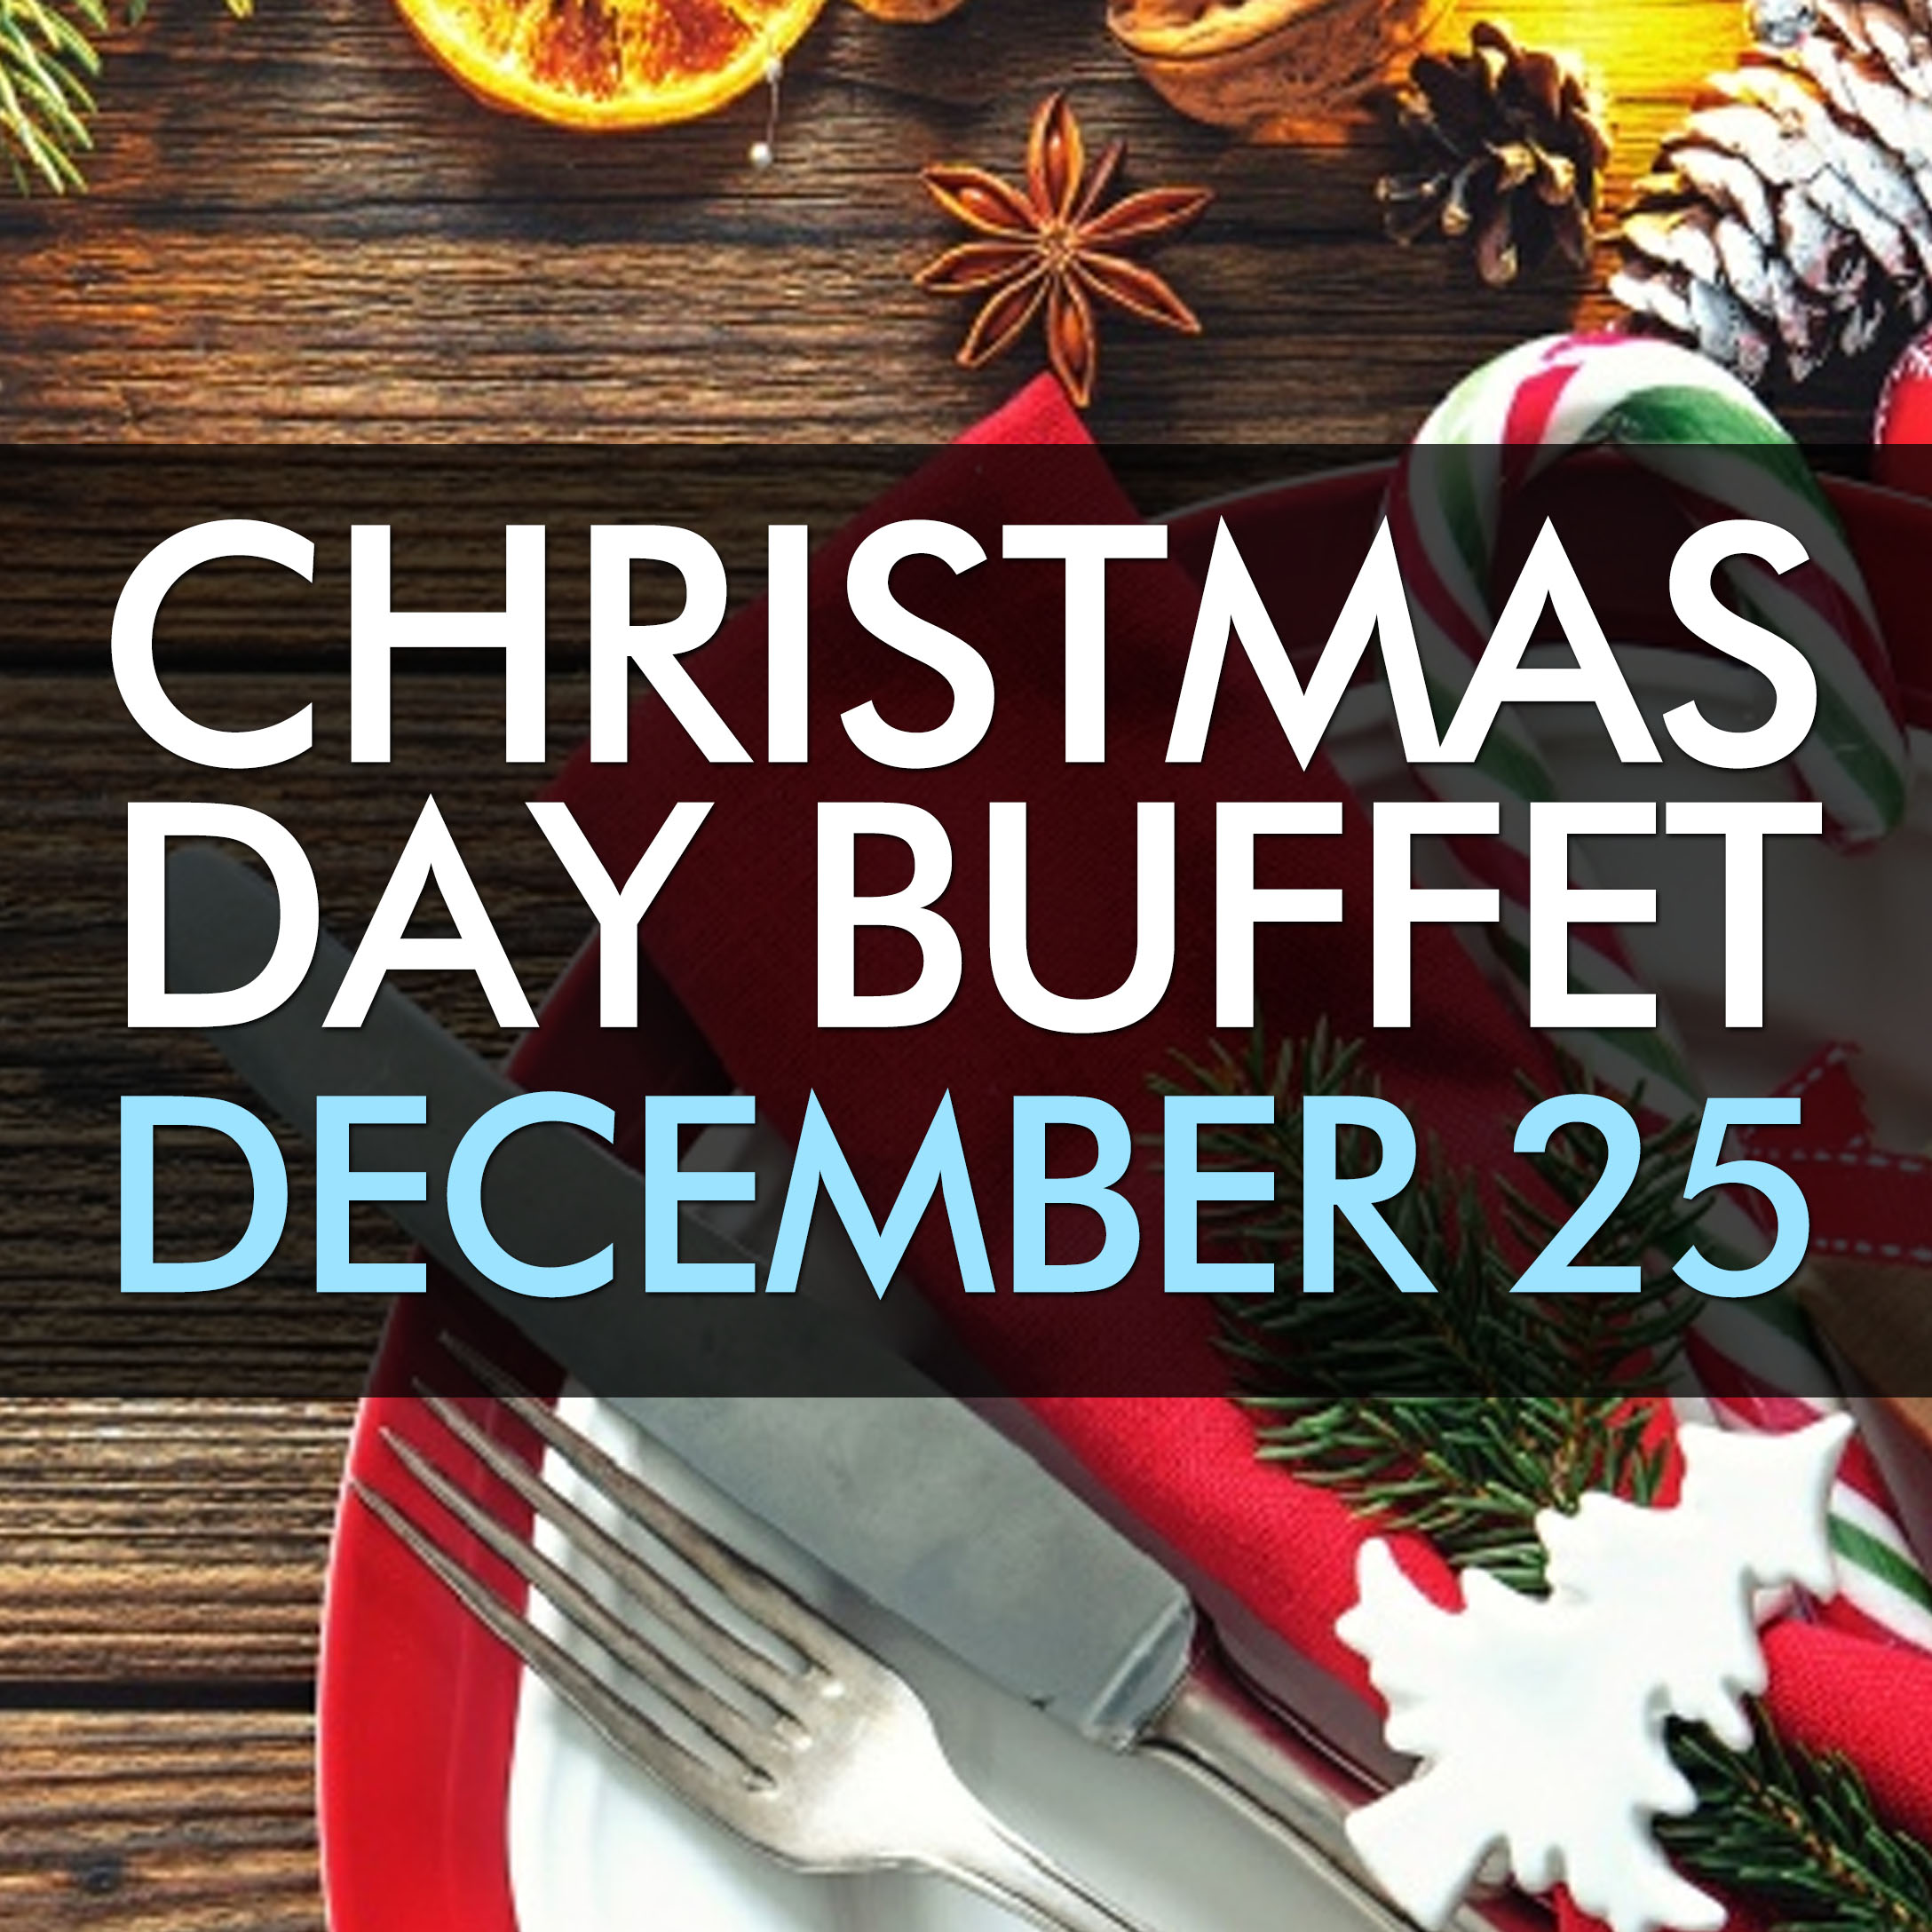 Christmas Buffet 2020 Near Me Buy Tickets to Christmas Day Buffet 2020 in Kitchener on Dec 25